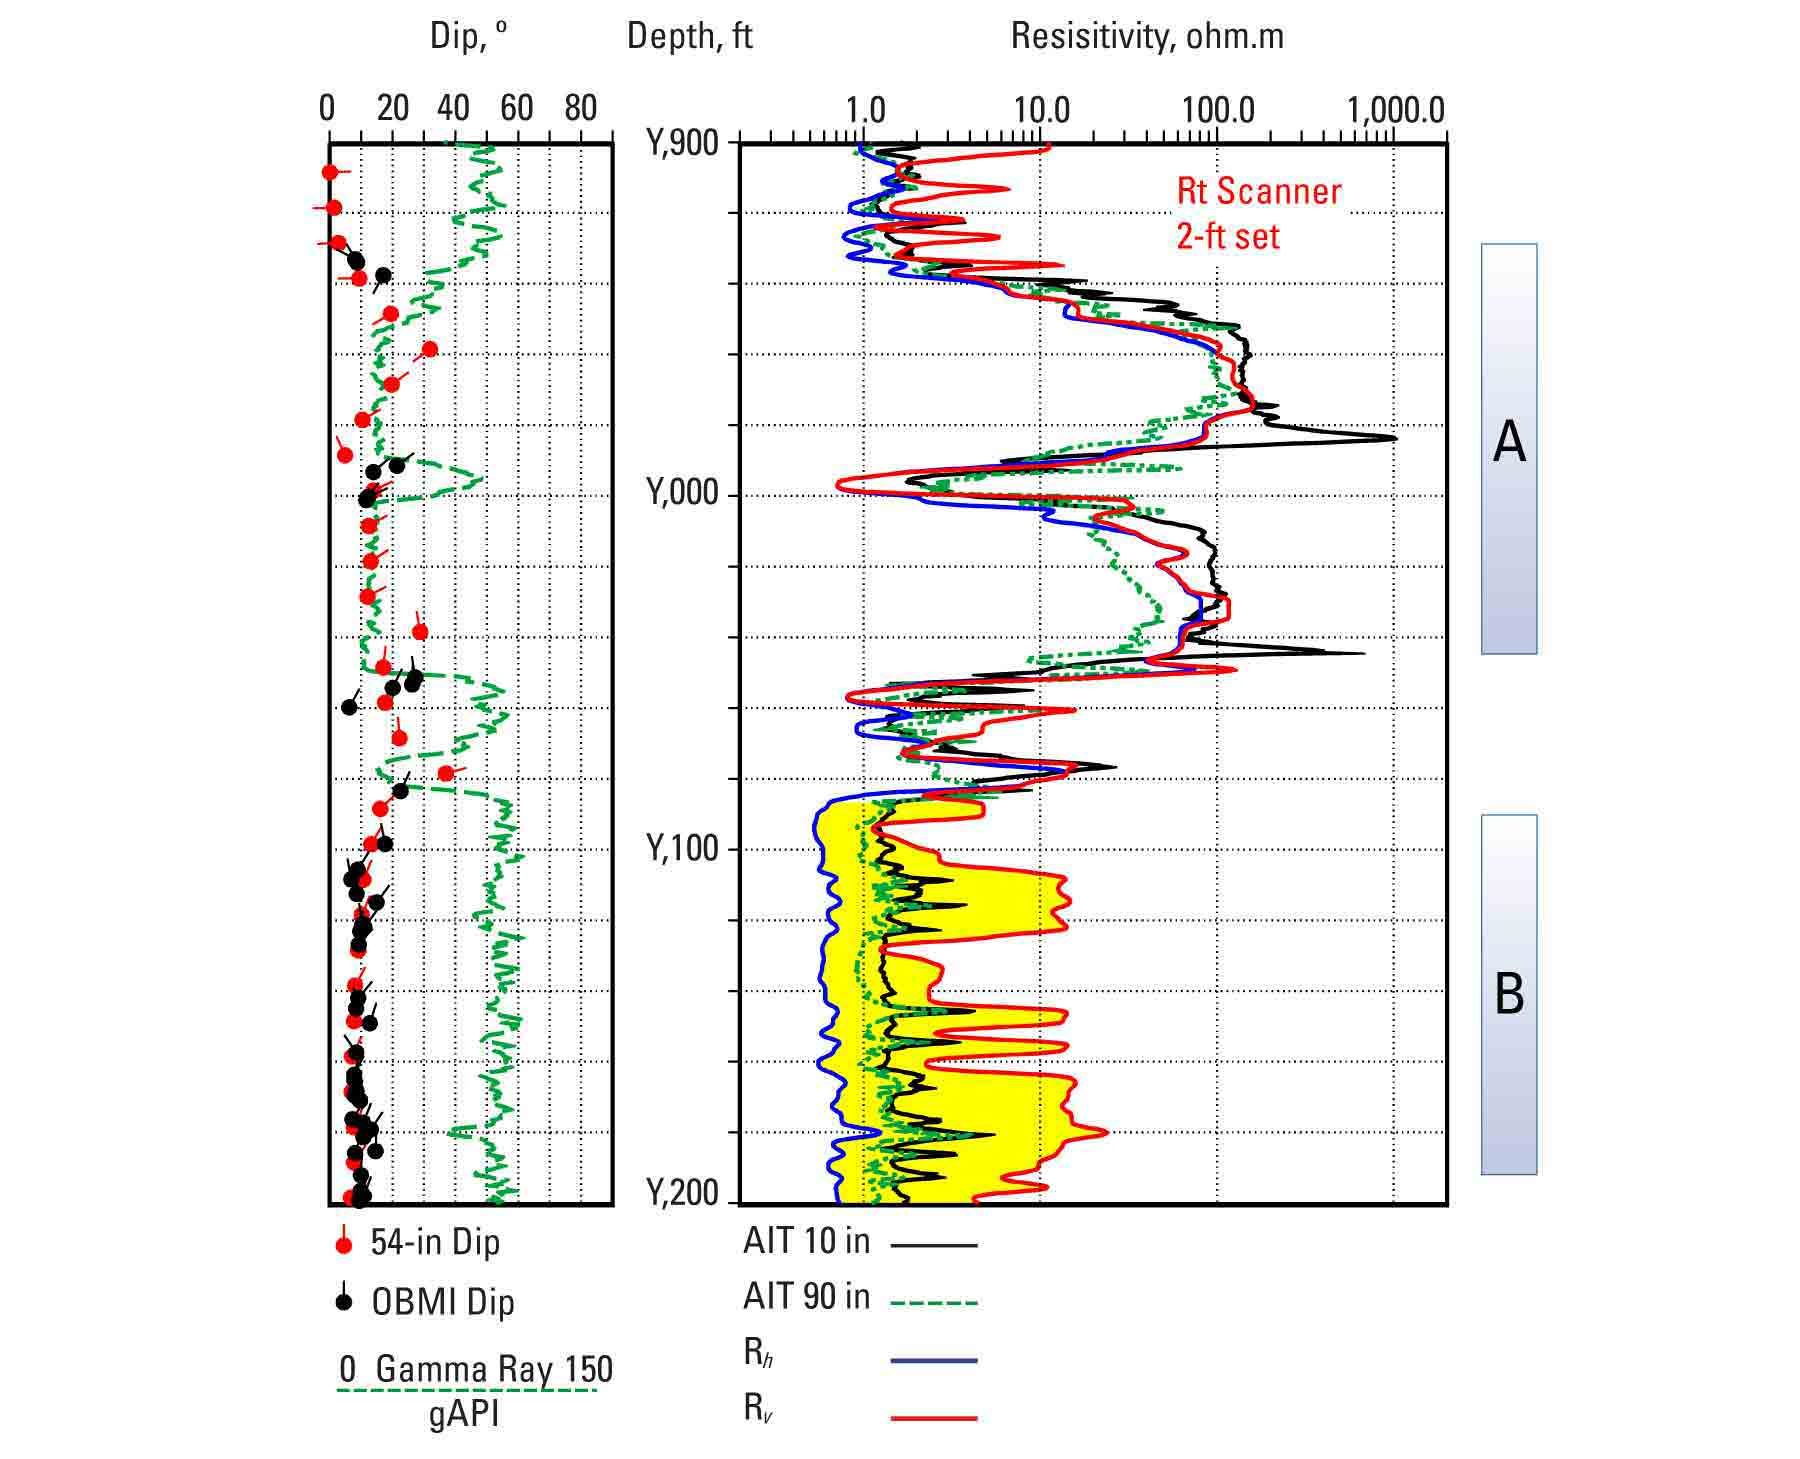 In Zone A, the conventional AIT 90-in resistivity  reads low in the thicker channel sands because of the surrounding dipping shale beds. The AIT 10-in resistivity also exhibits significant shoulder-bed horns. The Rt Scanner Rv and Rh measurements correct for the dipping shale beds in Zone A. In Zone B, the Rt Scanner measurements correctly identify a low-resistivity pay zone that otherwise would have been overlooked.